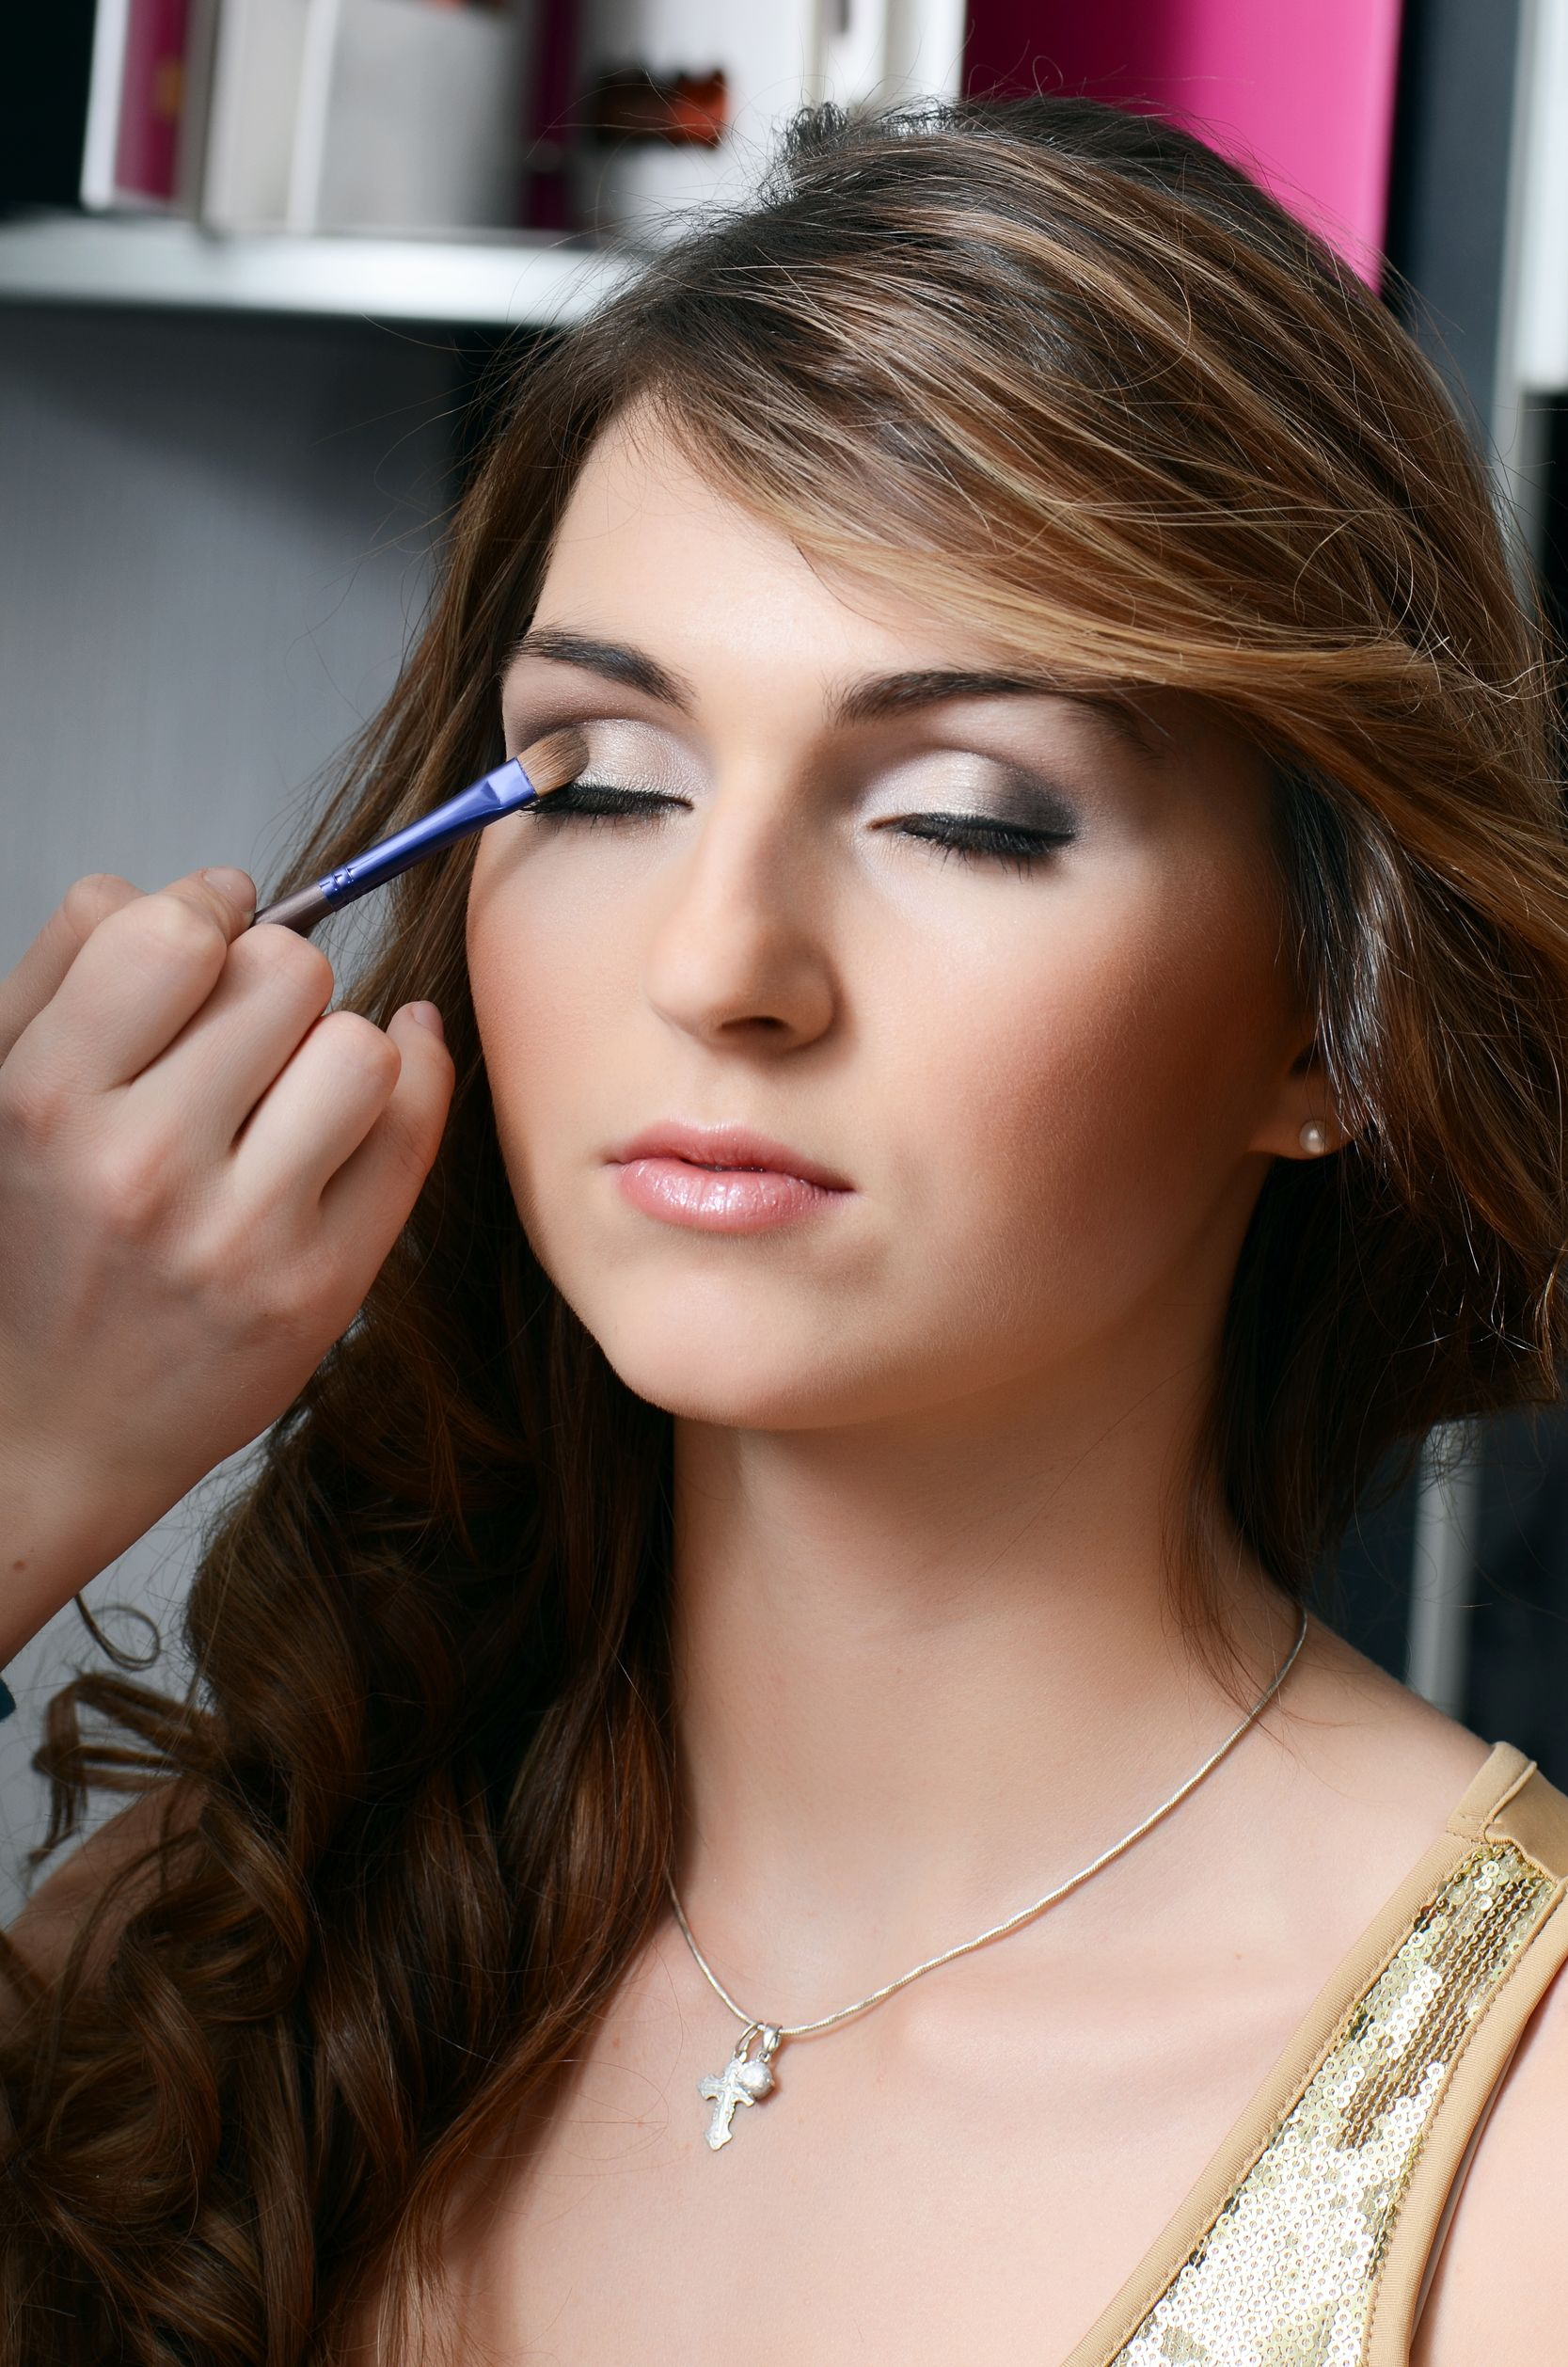 Spa makeup application bristol ct